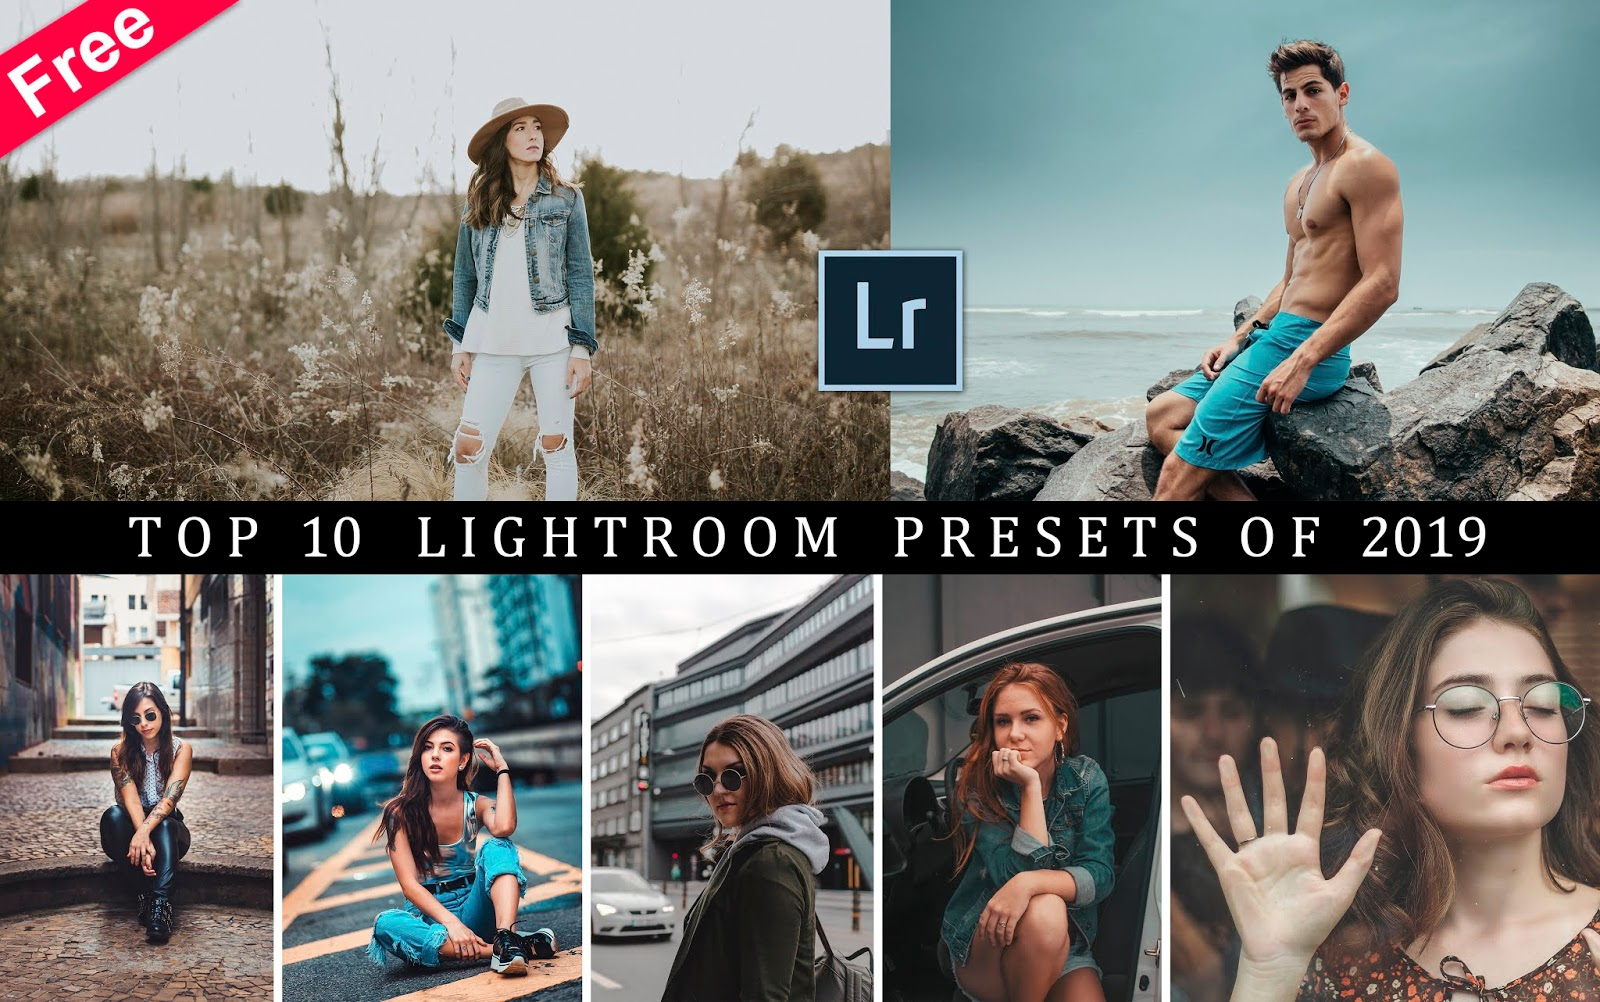 Download Top 10 Lightroom Presets of 2019 for Free | 10 Best Lightroom Presets of 2019 | Top 10 Desktop Lightroom Presets of 2019